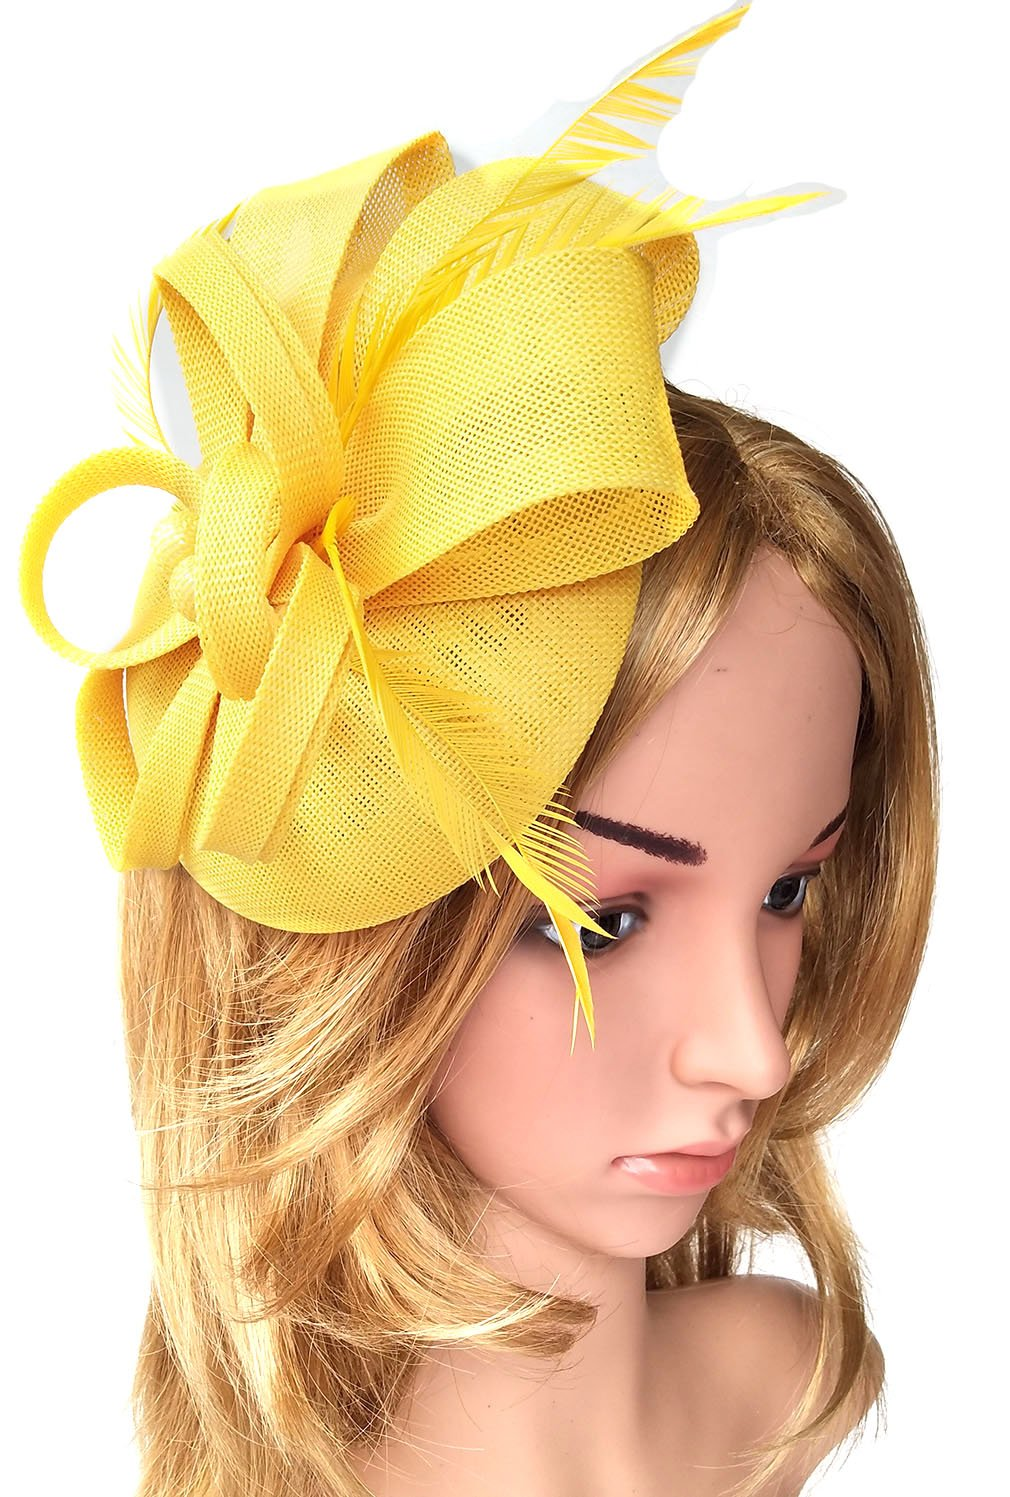 Biruil Women's Fascinator Hat Imitation Sinamay Feather Tea Party Pillbox Flower Derby (Yellow) by Biruil (Image #2)